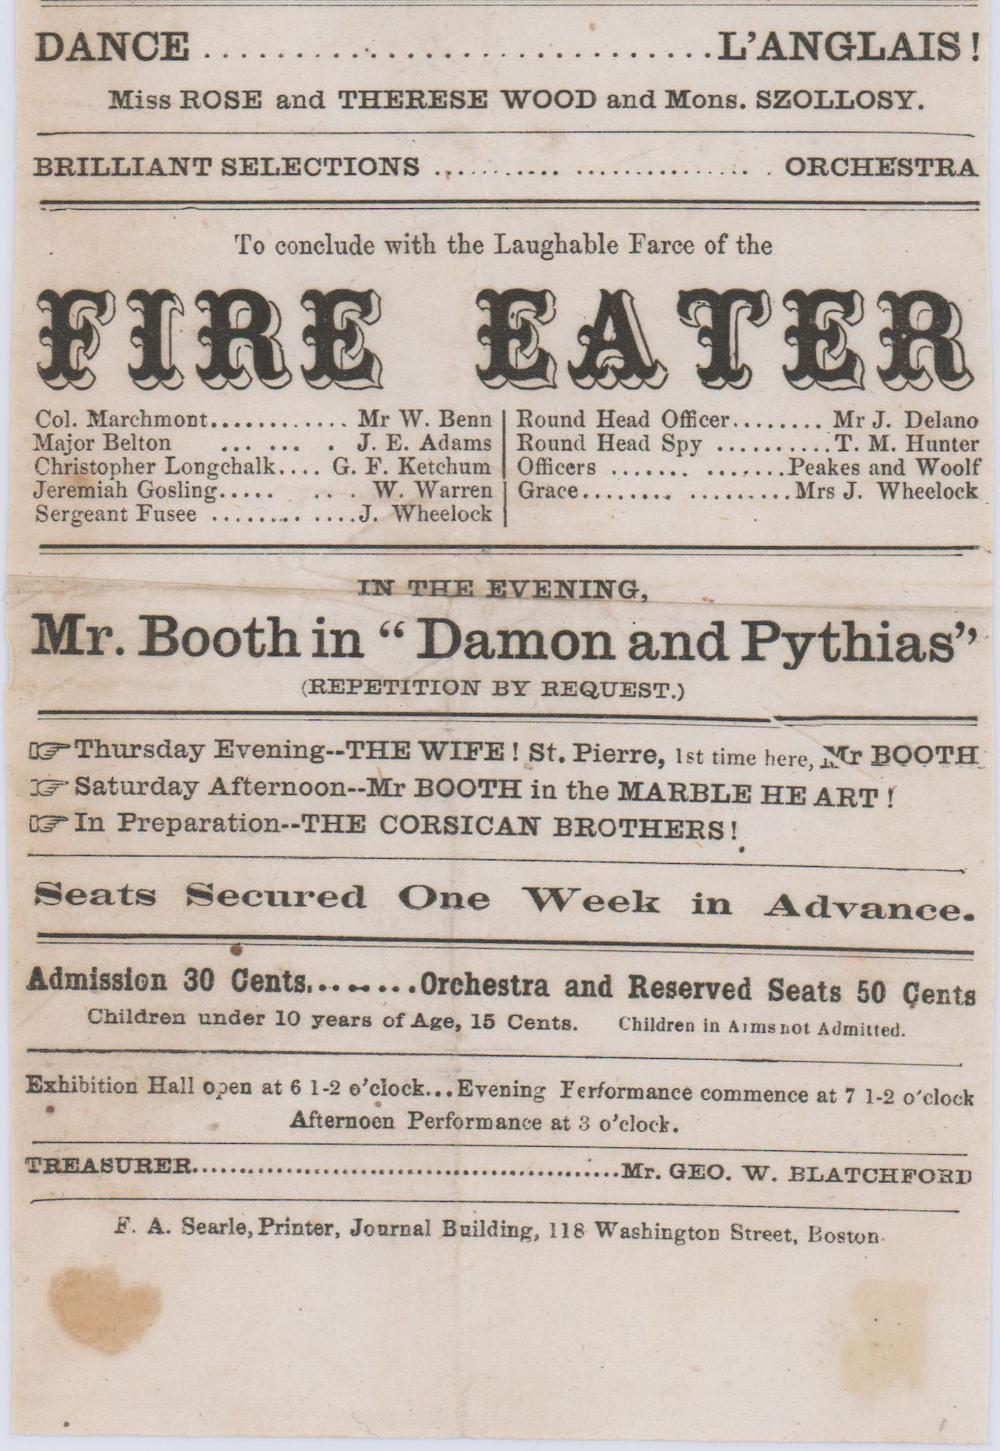 """Mr. Booth in """"Damon and Pythias"""" also Starring in """"The Wife"""", """"Marble Heart"""" & """"The Corsican Brothers"""""""